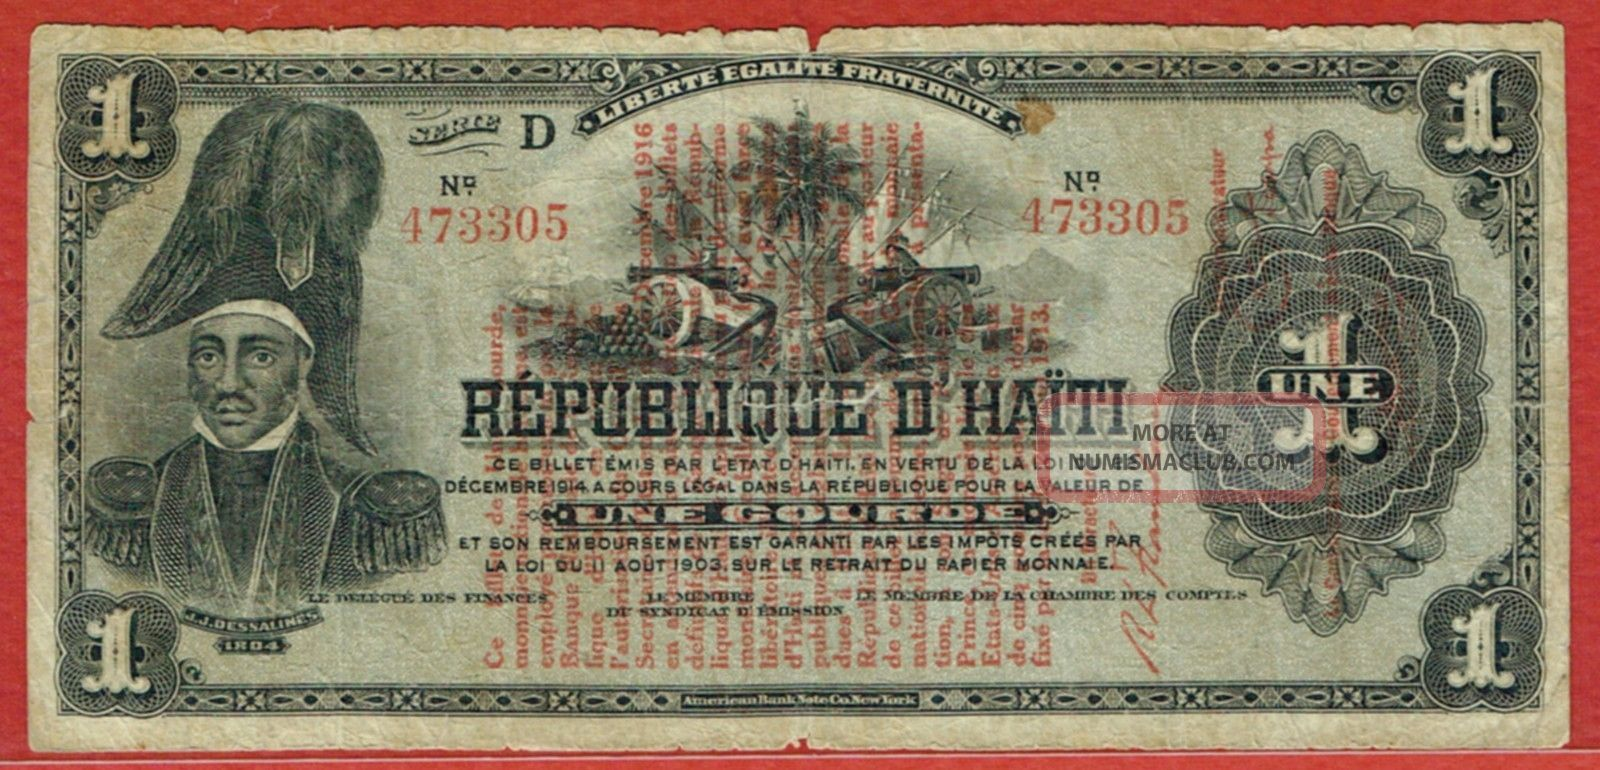 Republique D ' Haiti Law 1916 Red Overprint 1 Gourde (pick 137) North & Central America photo